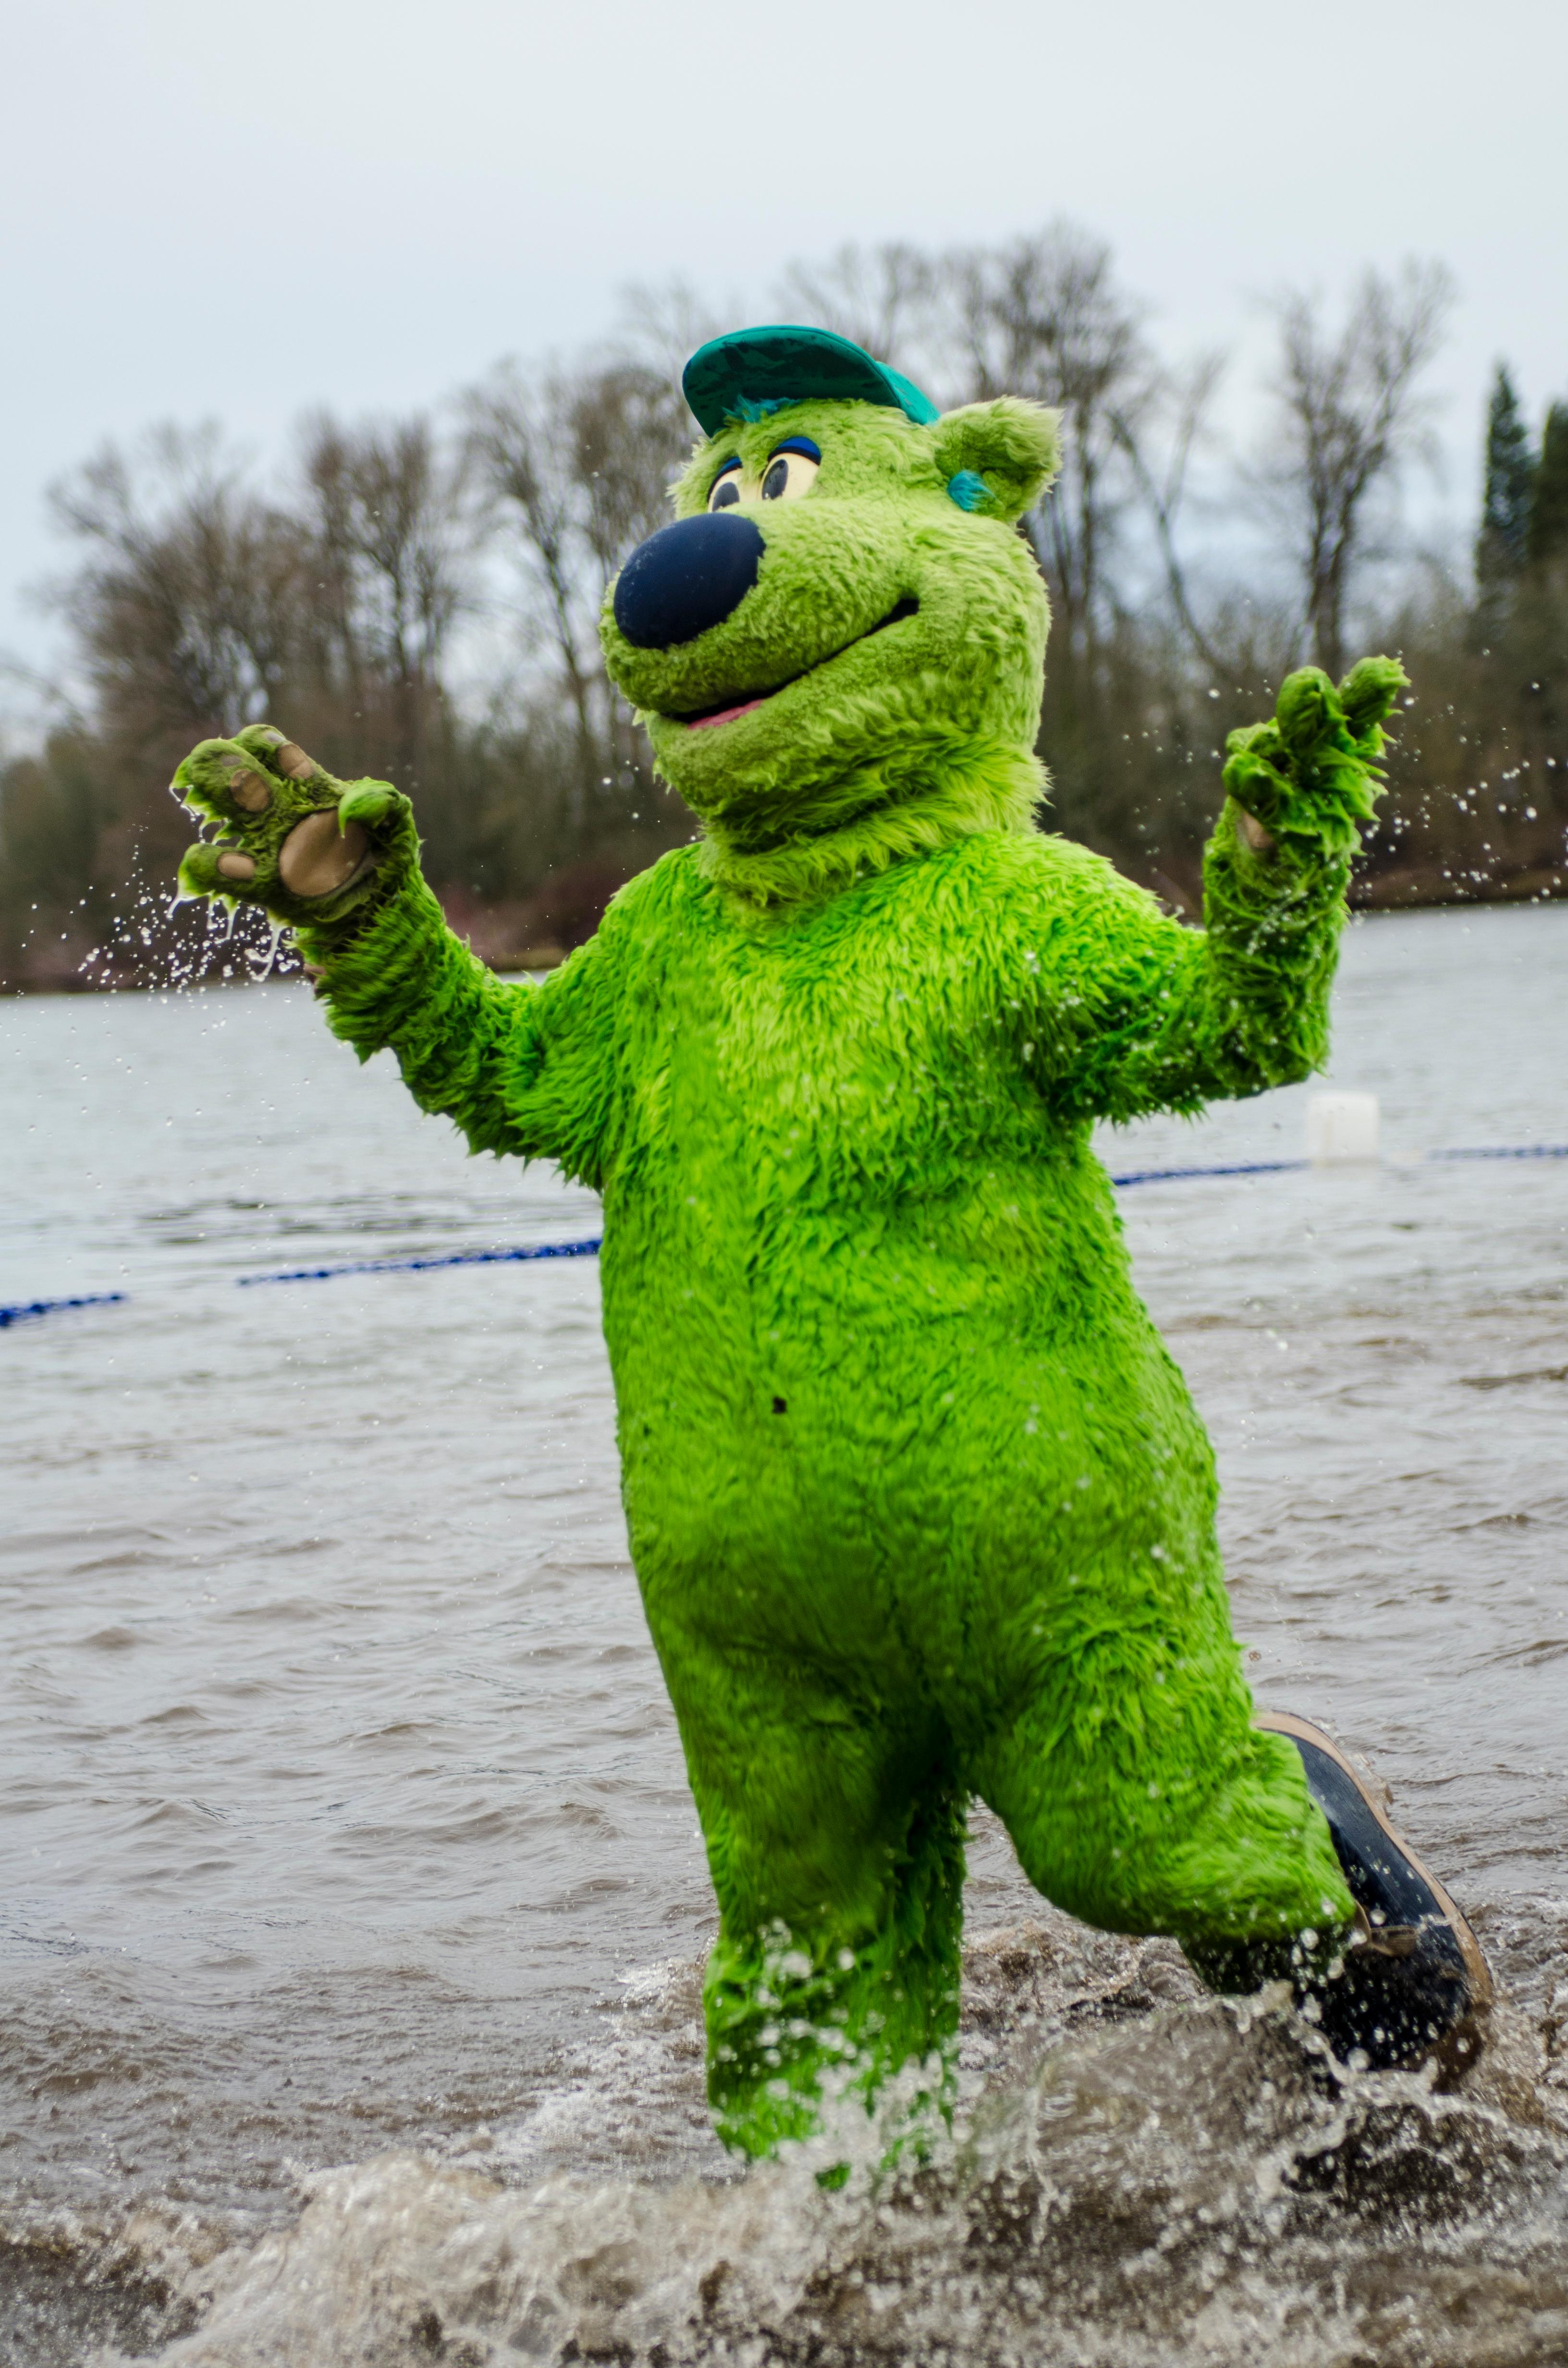 The Eugene Emerald baseball team mascot Sluggo.� Plungers and onlookers gather for the annual Special Olympics Polar Plunge at Maurie Jacobs Park in Eugene. With over 250 plungers diving into the Willamette River, participants look to surpass $412,000, which was last years total. Eugene is just one of the five locations around Oregon that hosts the plunge, but is a nationwide event. The funds raised by todayâ��s plunge will go towards assisting Oregon Special Olympic teams. Photo by Kara Jenness, Oregon News Lab.